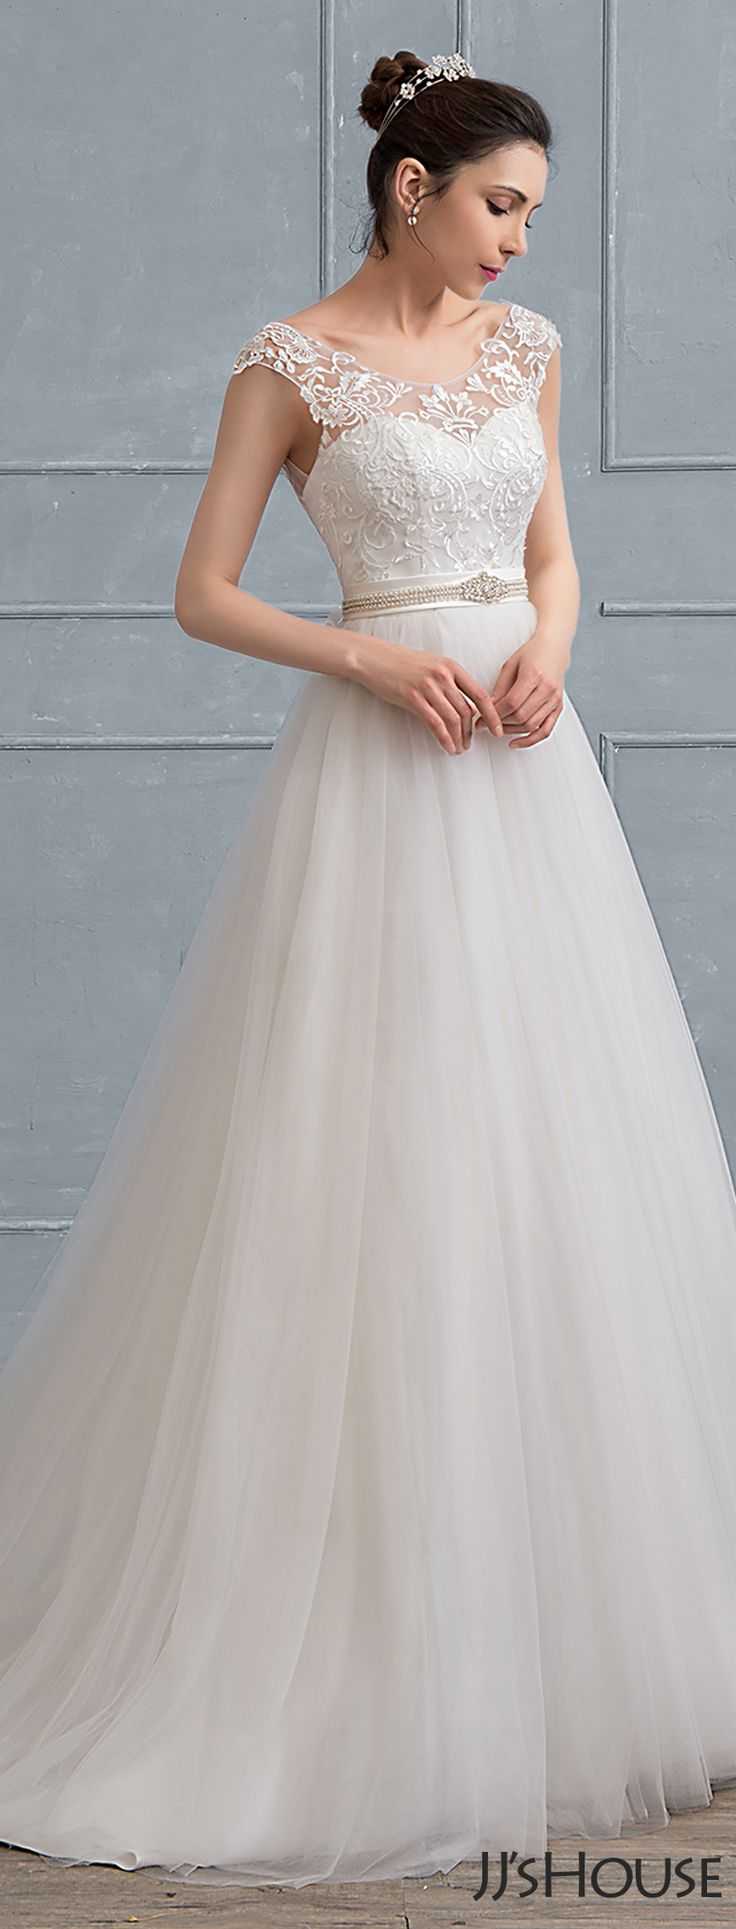 A Classic A-Line/Princess Lace Wedding Dress with  Court Train Tulle. If you are going to hold a tradditional wedding, this dress must be your first choice. #JJsHouse